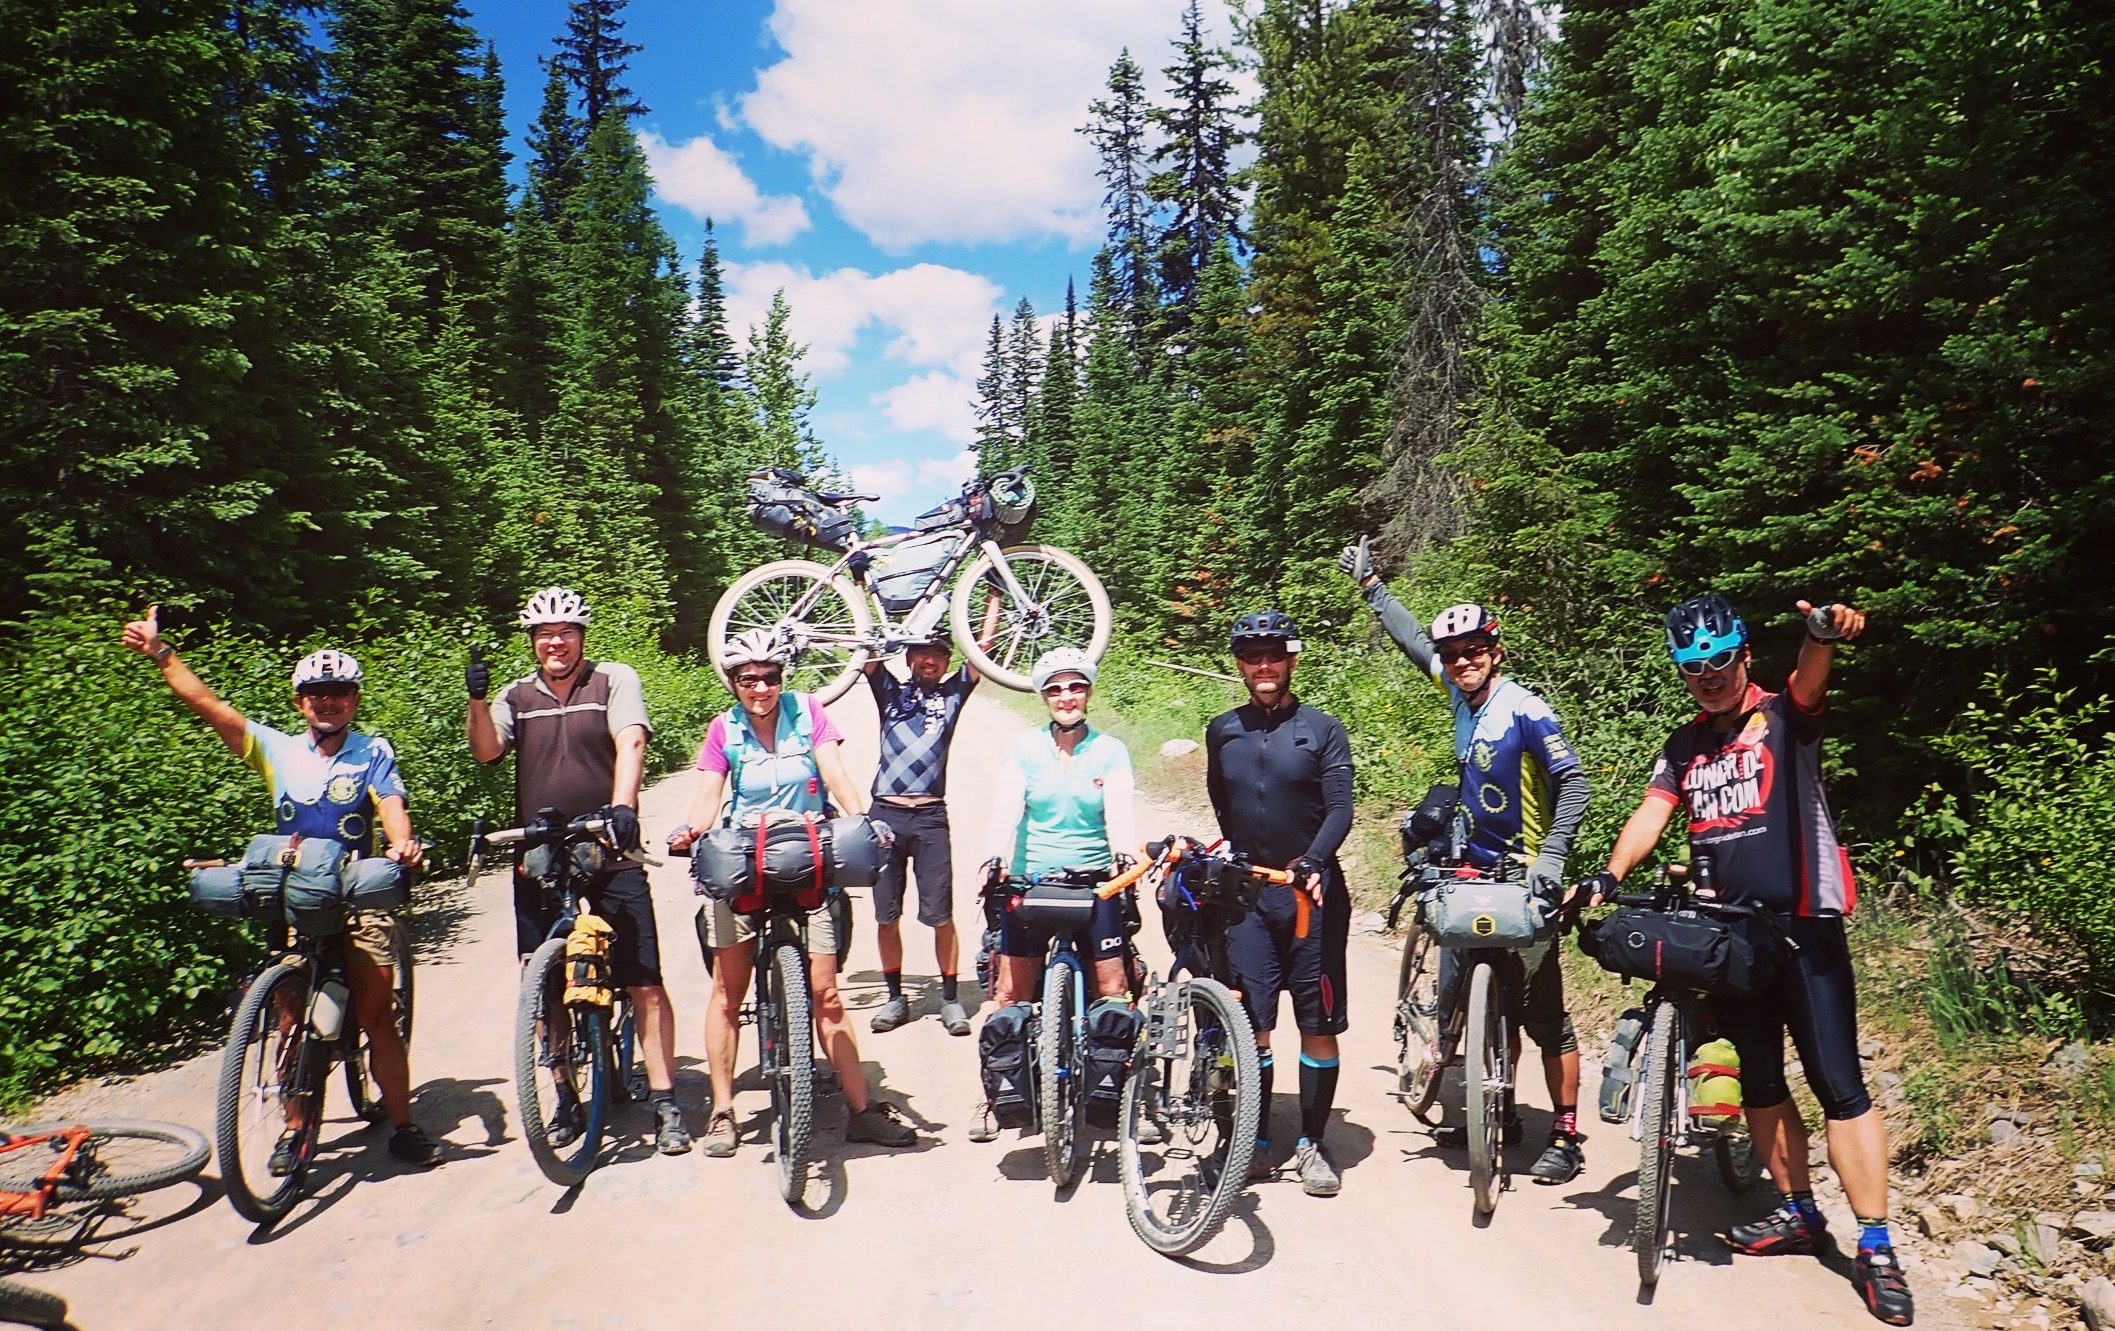 We met a group of Japanese bike packers who were riding a loop from Whitefish. They were more enthusiastic about other bikers than we were.